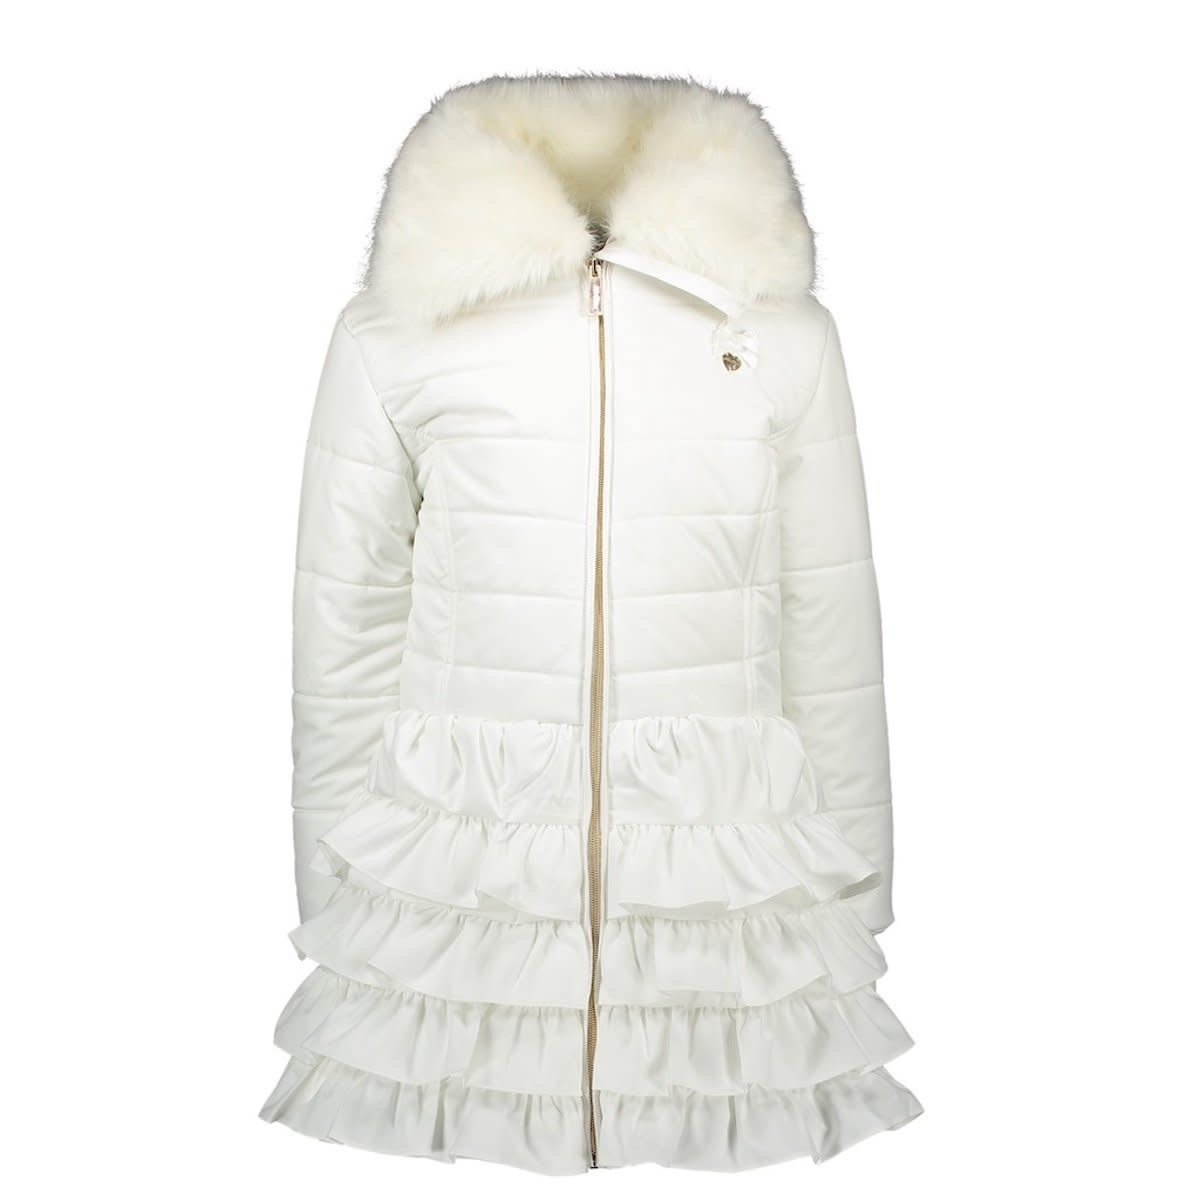 Lechic LeChic C007-5207 White Winter Luxury Ruffle Coat